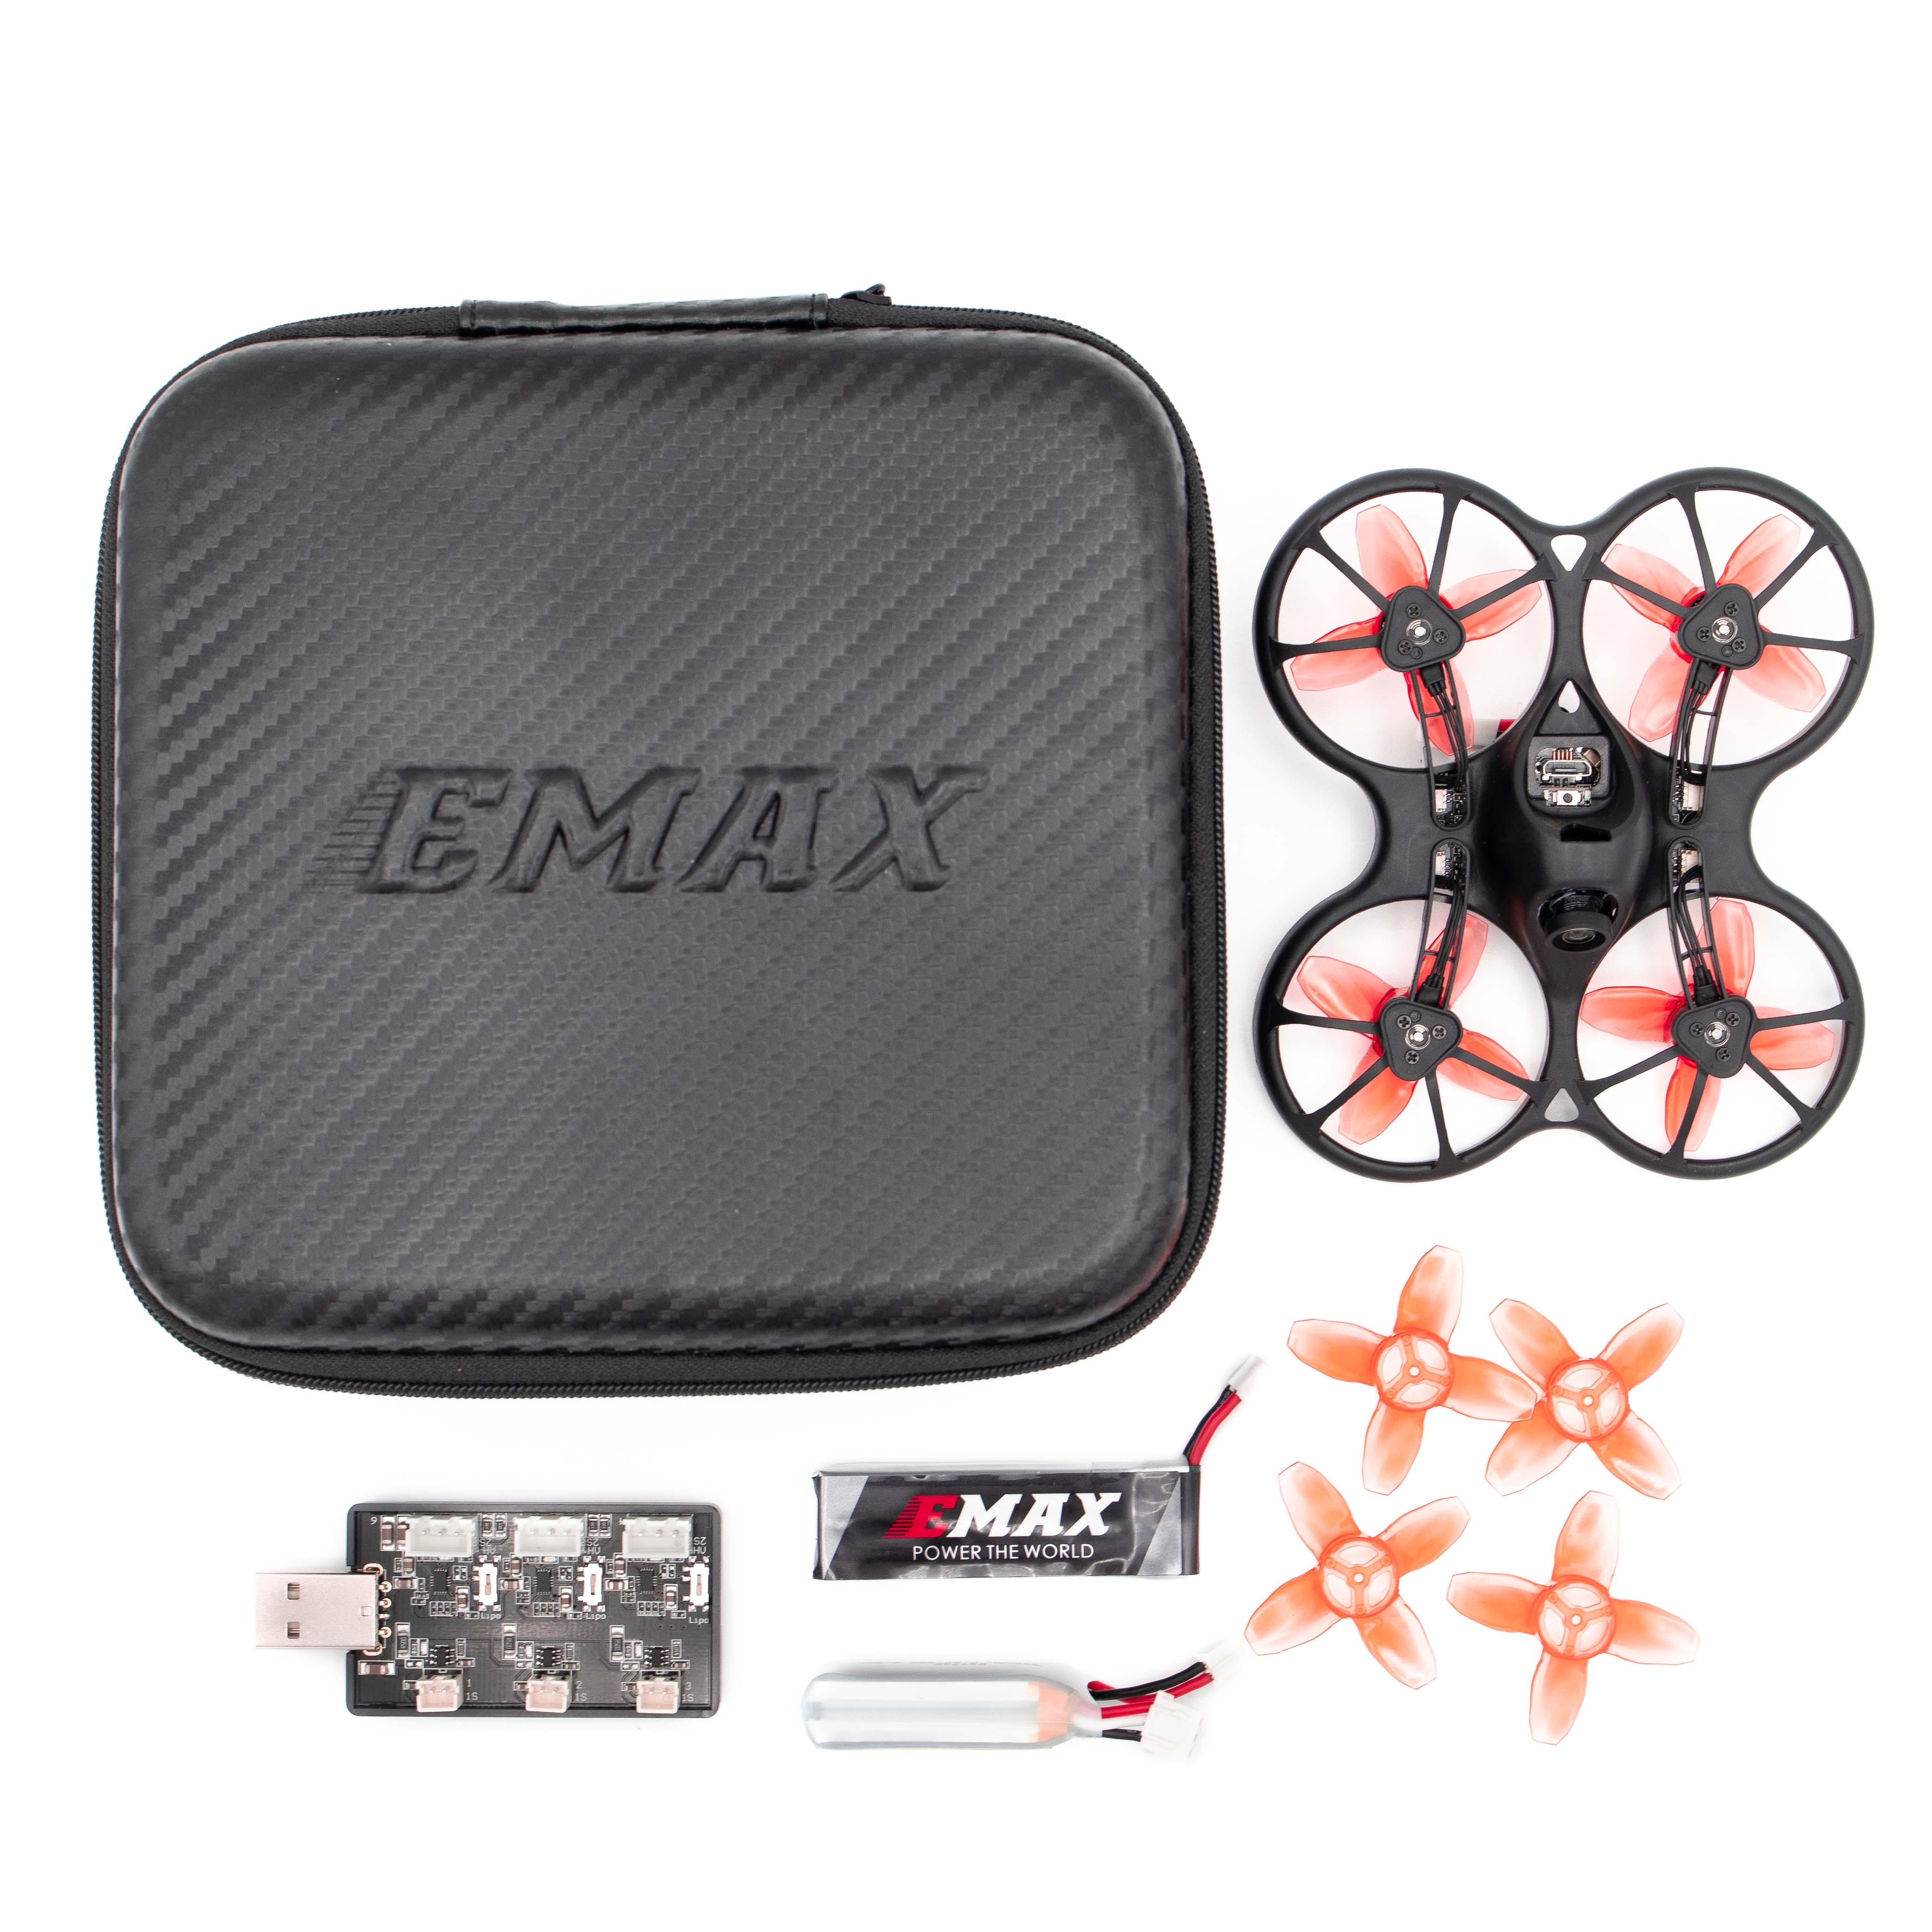 Newest Emax 2S Tinyhawk S Mini FPV Racing Drone With Camera 0802 15500KV Brushless Motor Support 1/2S Battery RC Plane